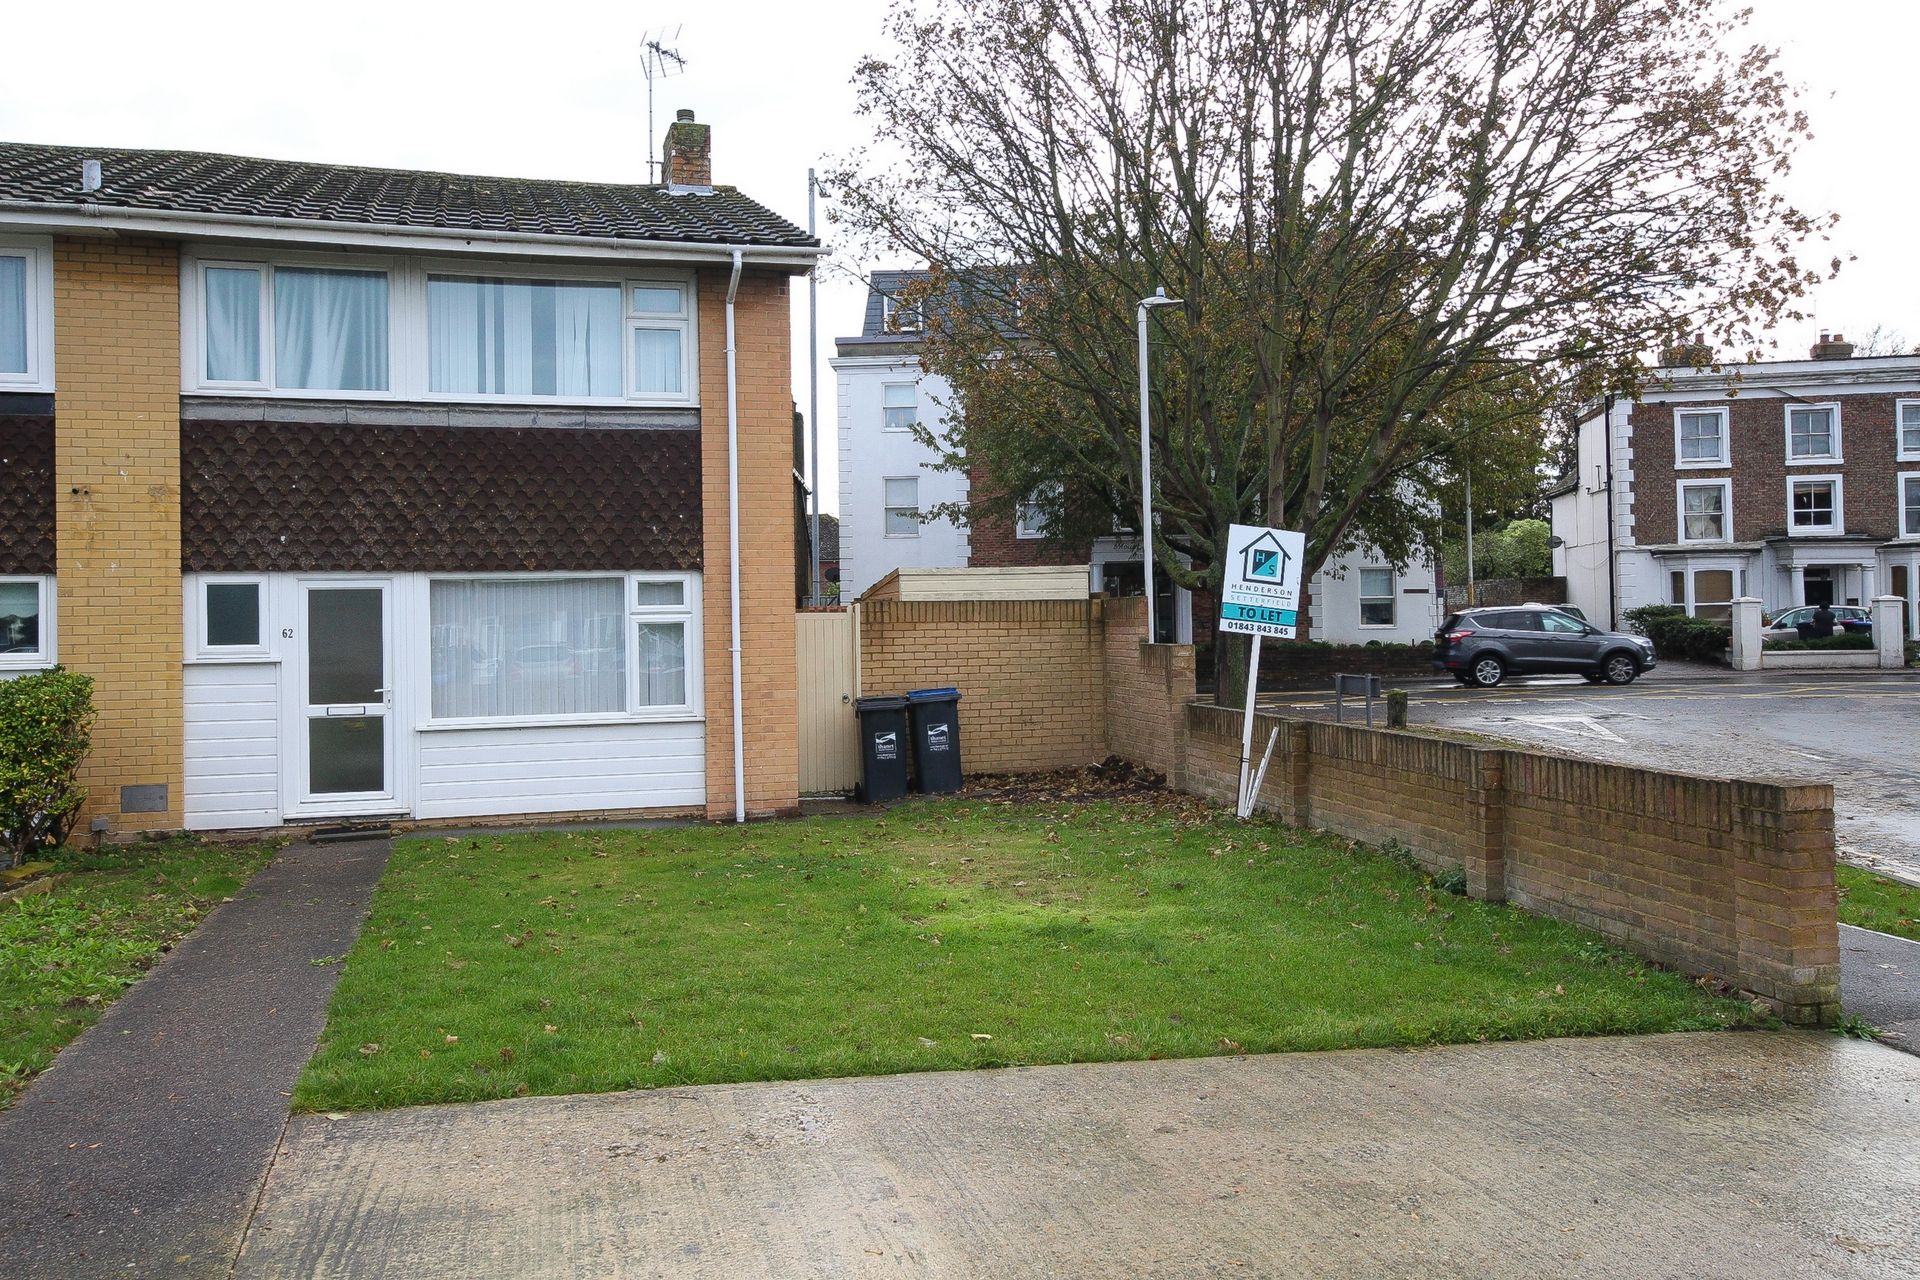 3 bed house to rent in Yew Tree Gardens, Birchington, CT7, CT7